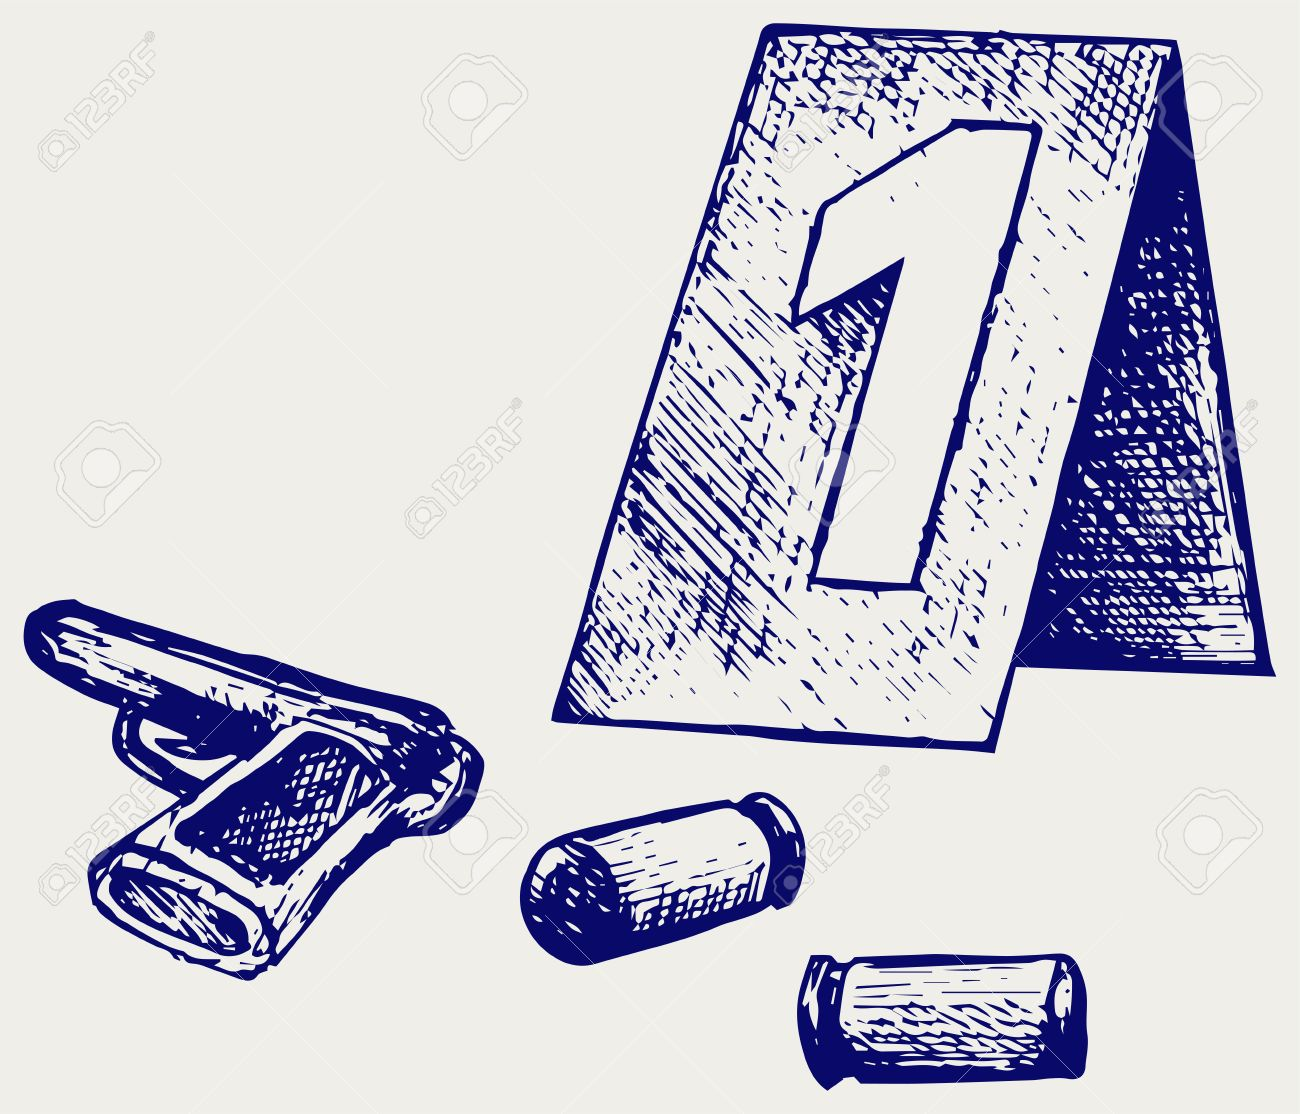 Forensic Science Place Of Shooting Doodle Style Royalty Free Cliparts Vectors And Stock Illustration Image 37002398